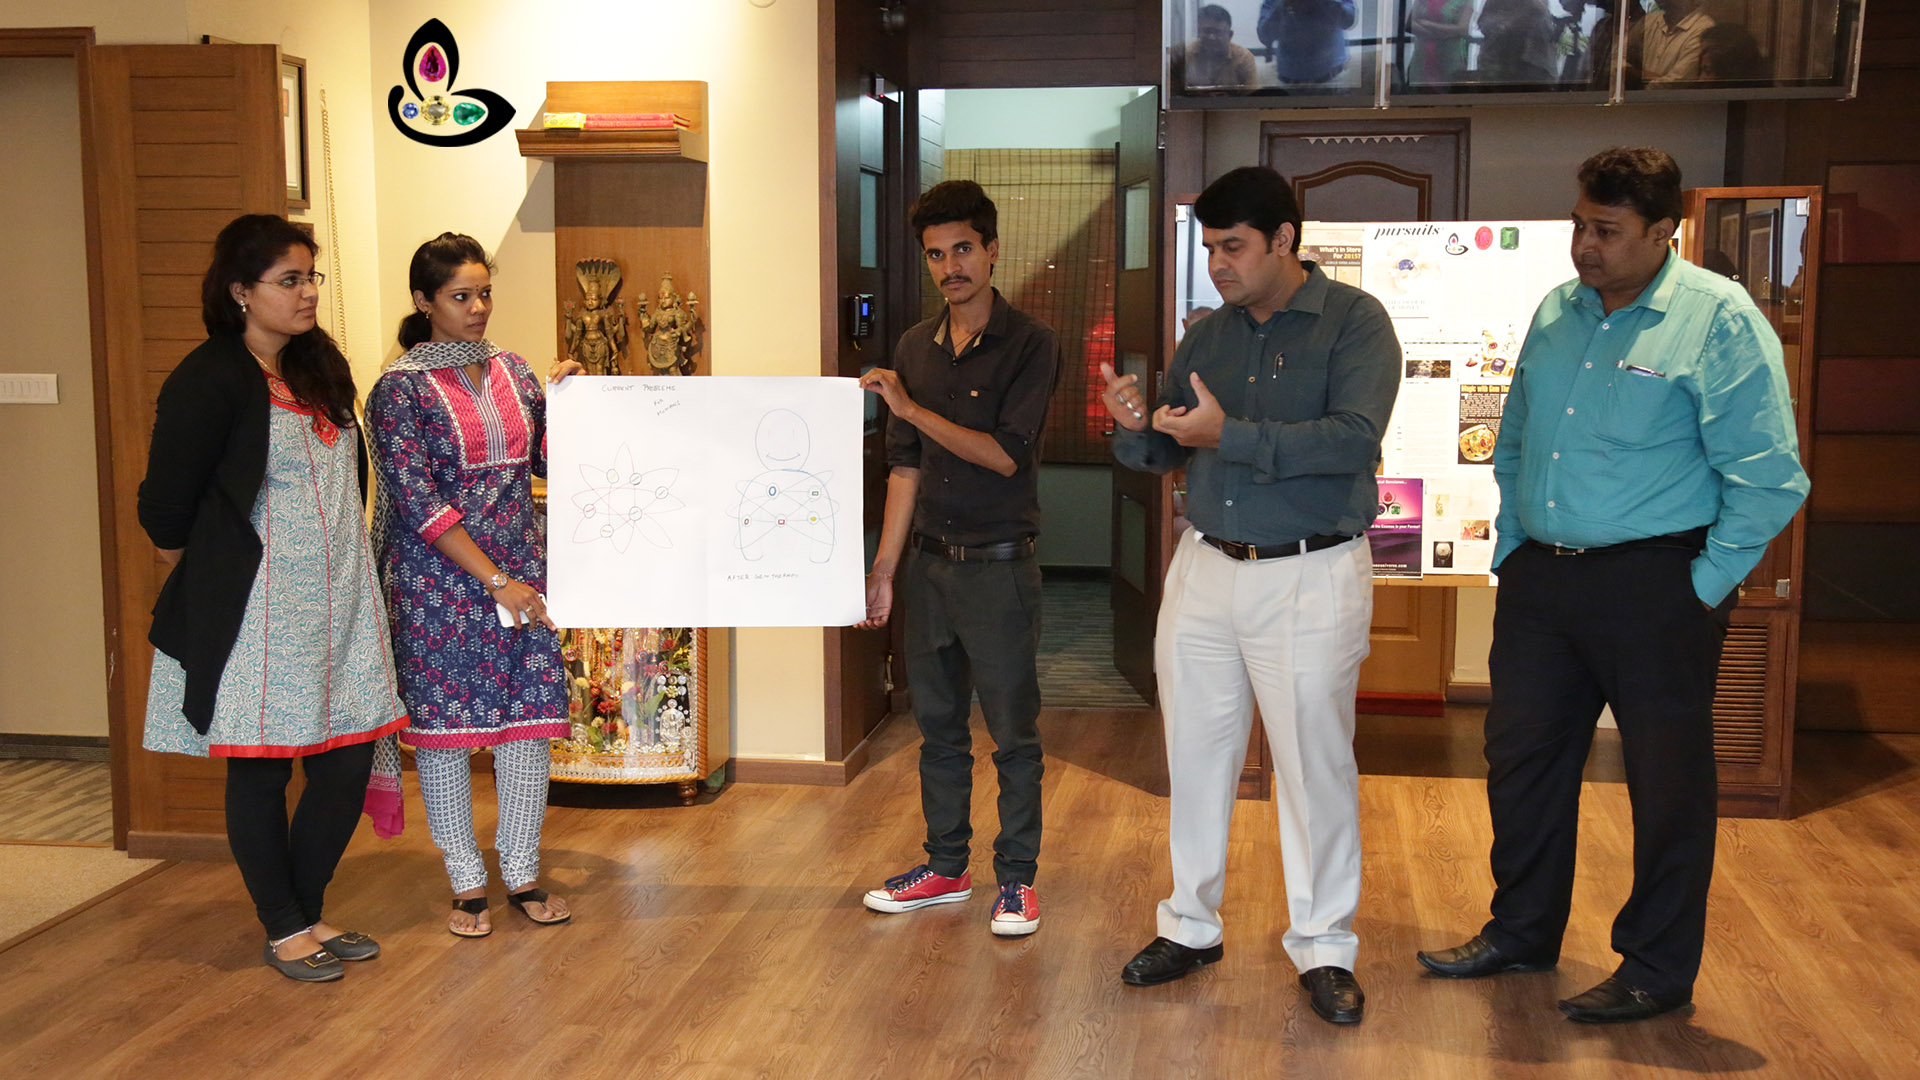 Team Wisdom Led By Raghav Ji explaining their interpretation of Gemstoneuniverse Vision